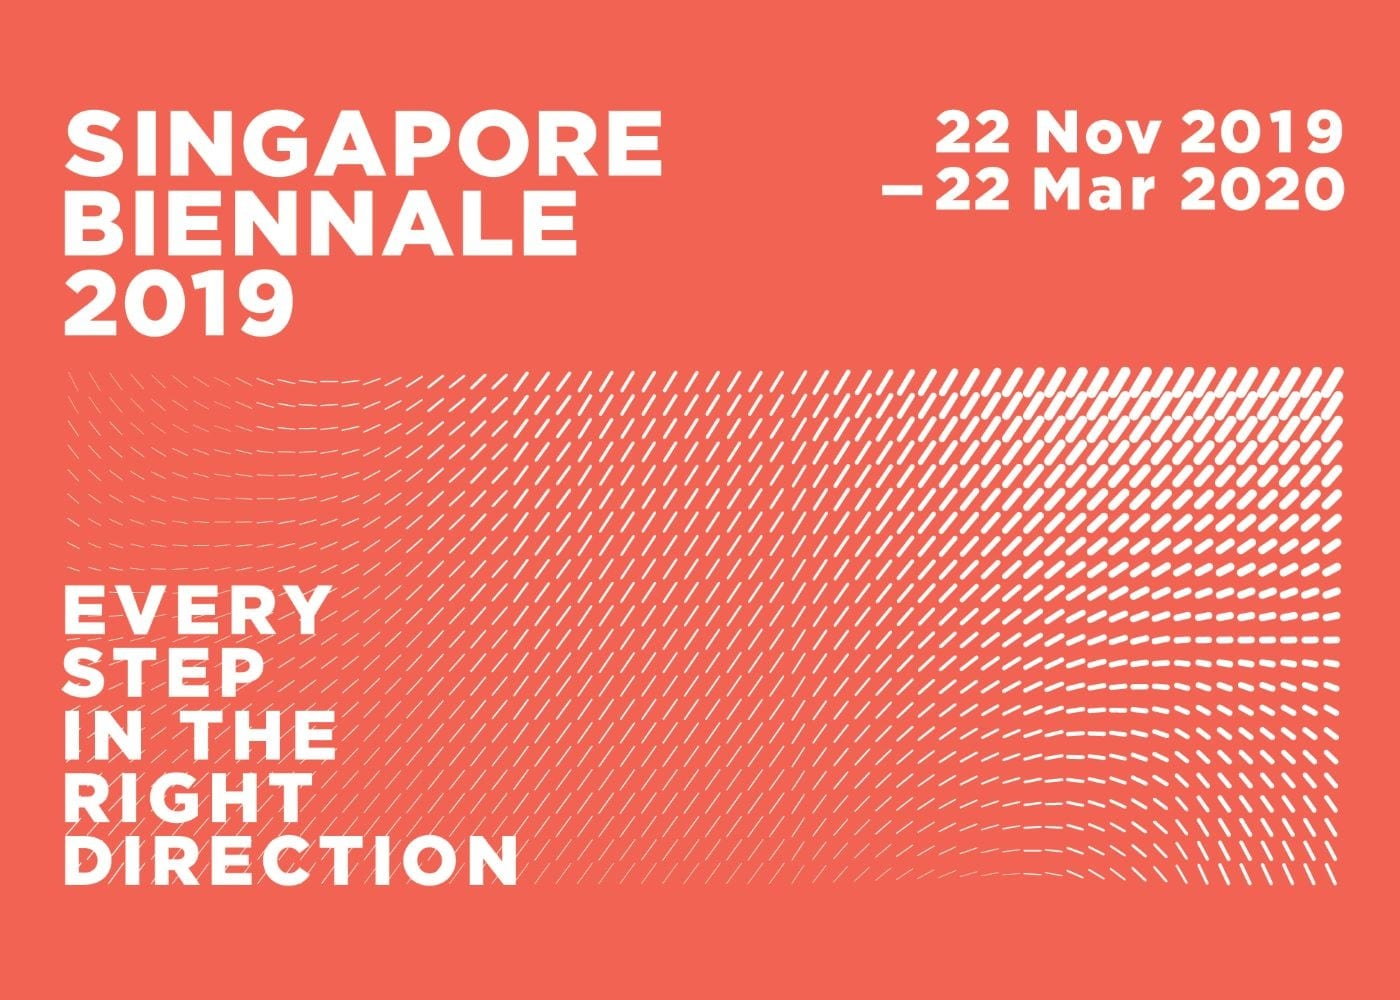 Visit the sixth edition of the Singapore Biennale